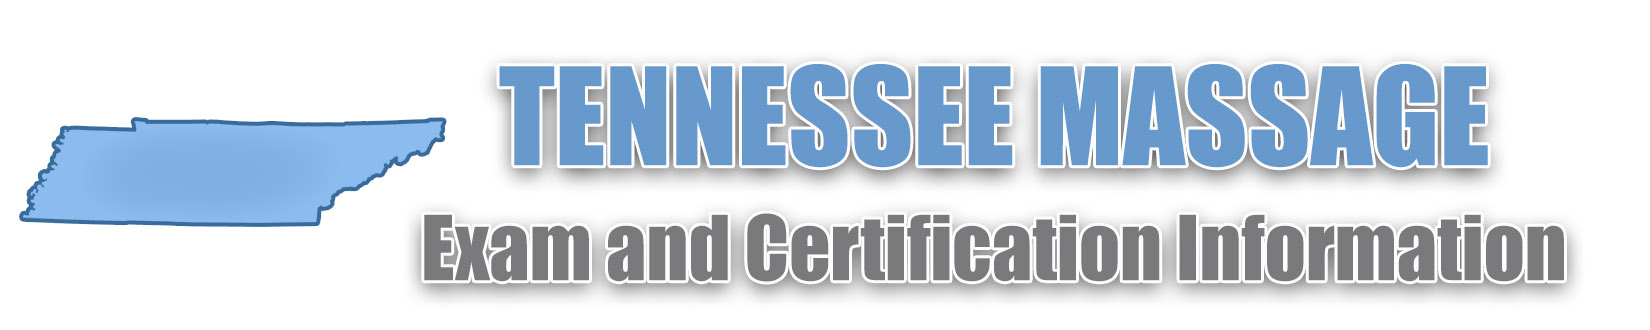 Tennessee MBLEX Massage Exam and Certification Information